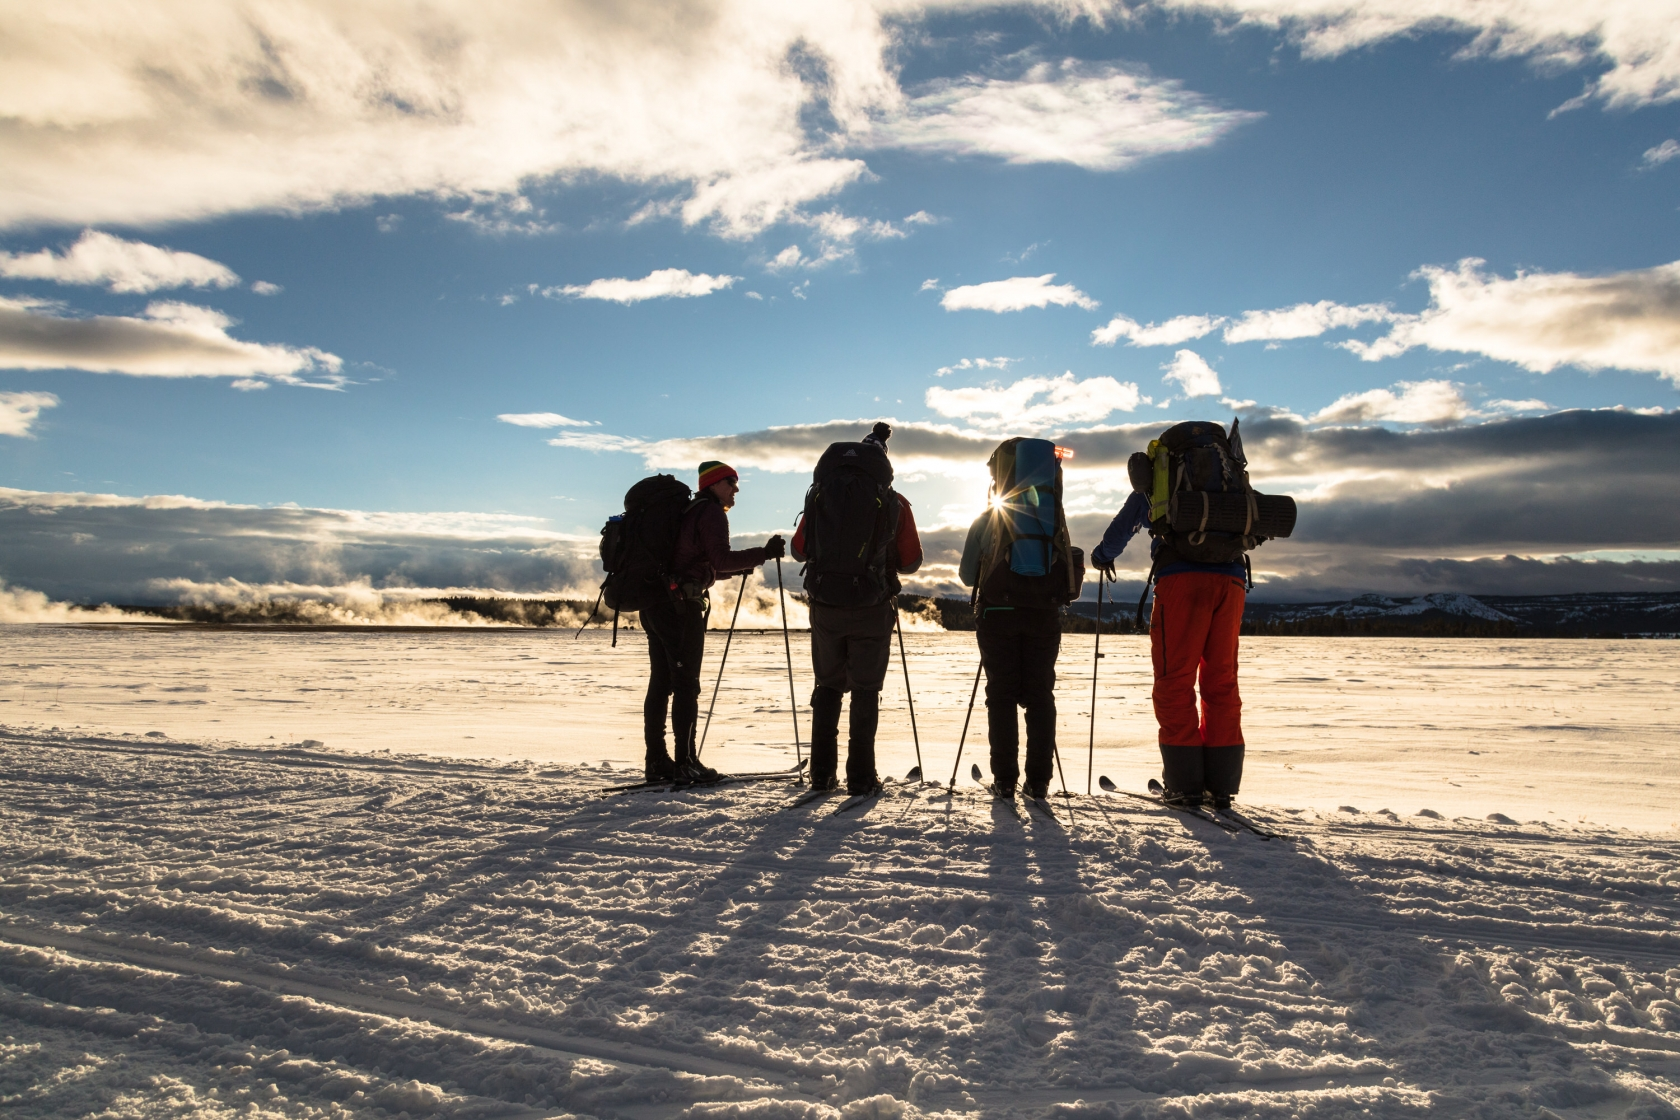 4 Backcountry skiers watching the sunset across the Lower Geyser Basin at Yellowstone National Park